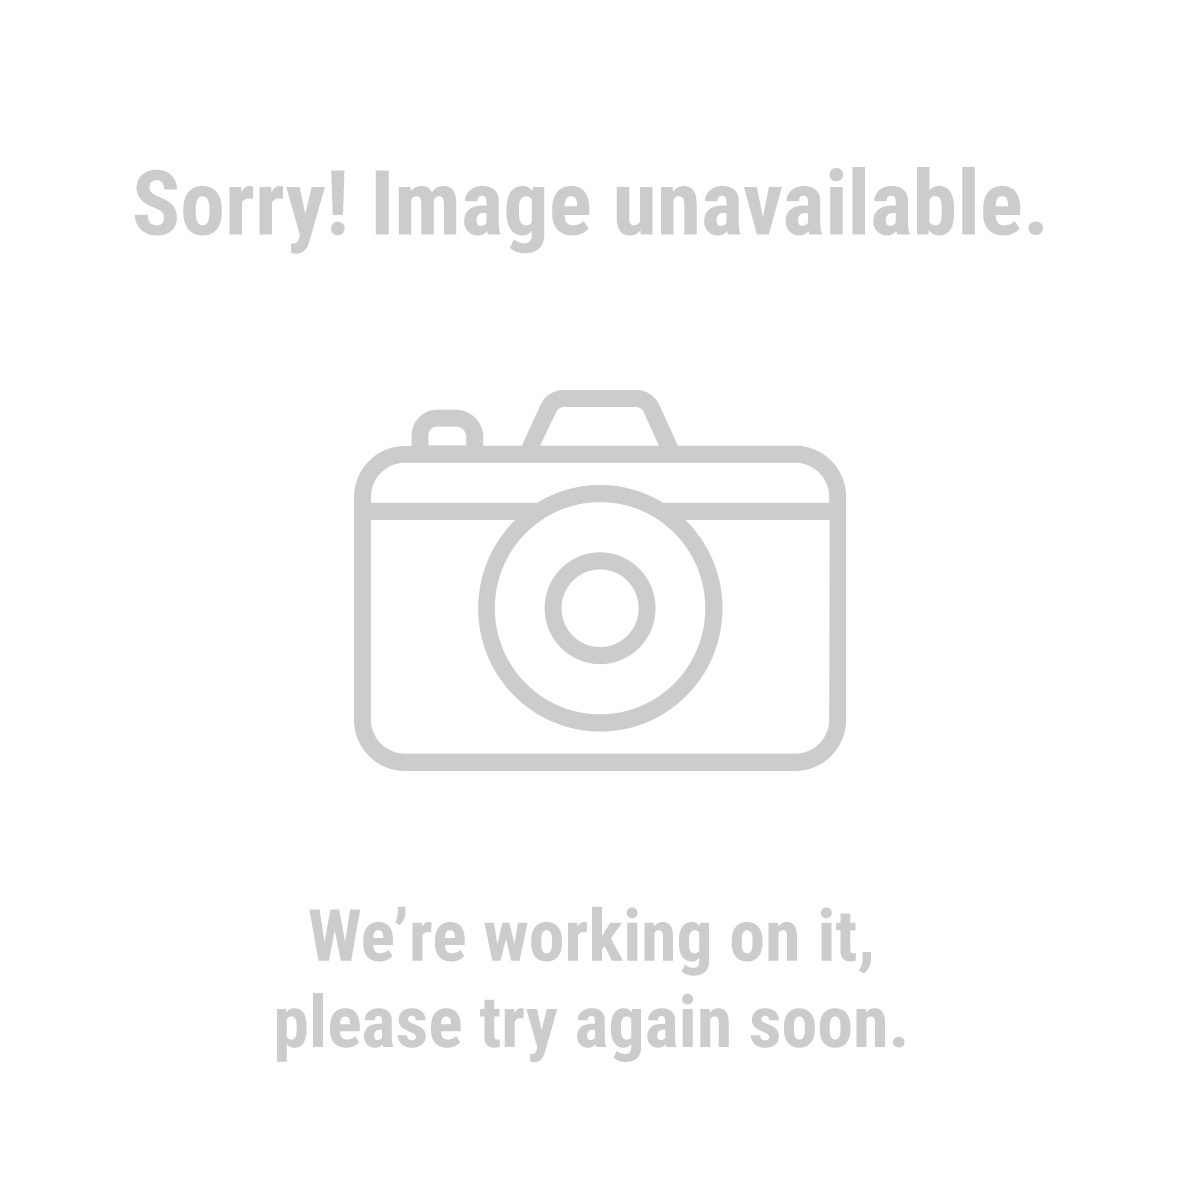 Pittsburgh 90764 32 Piece Screwdriver Set